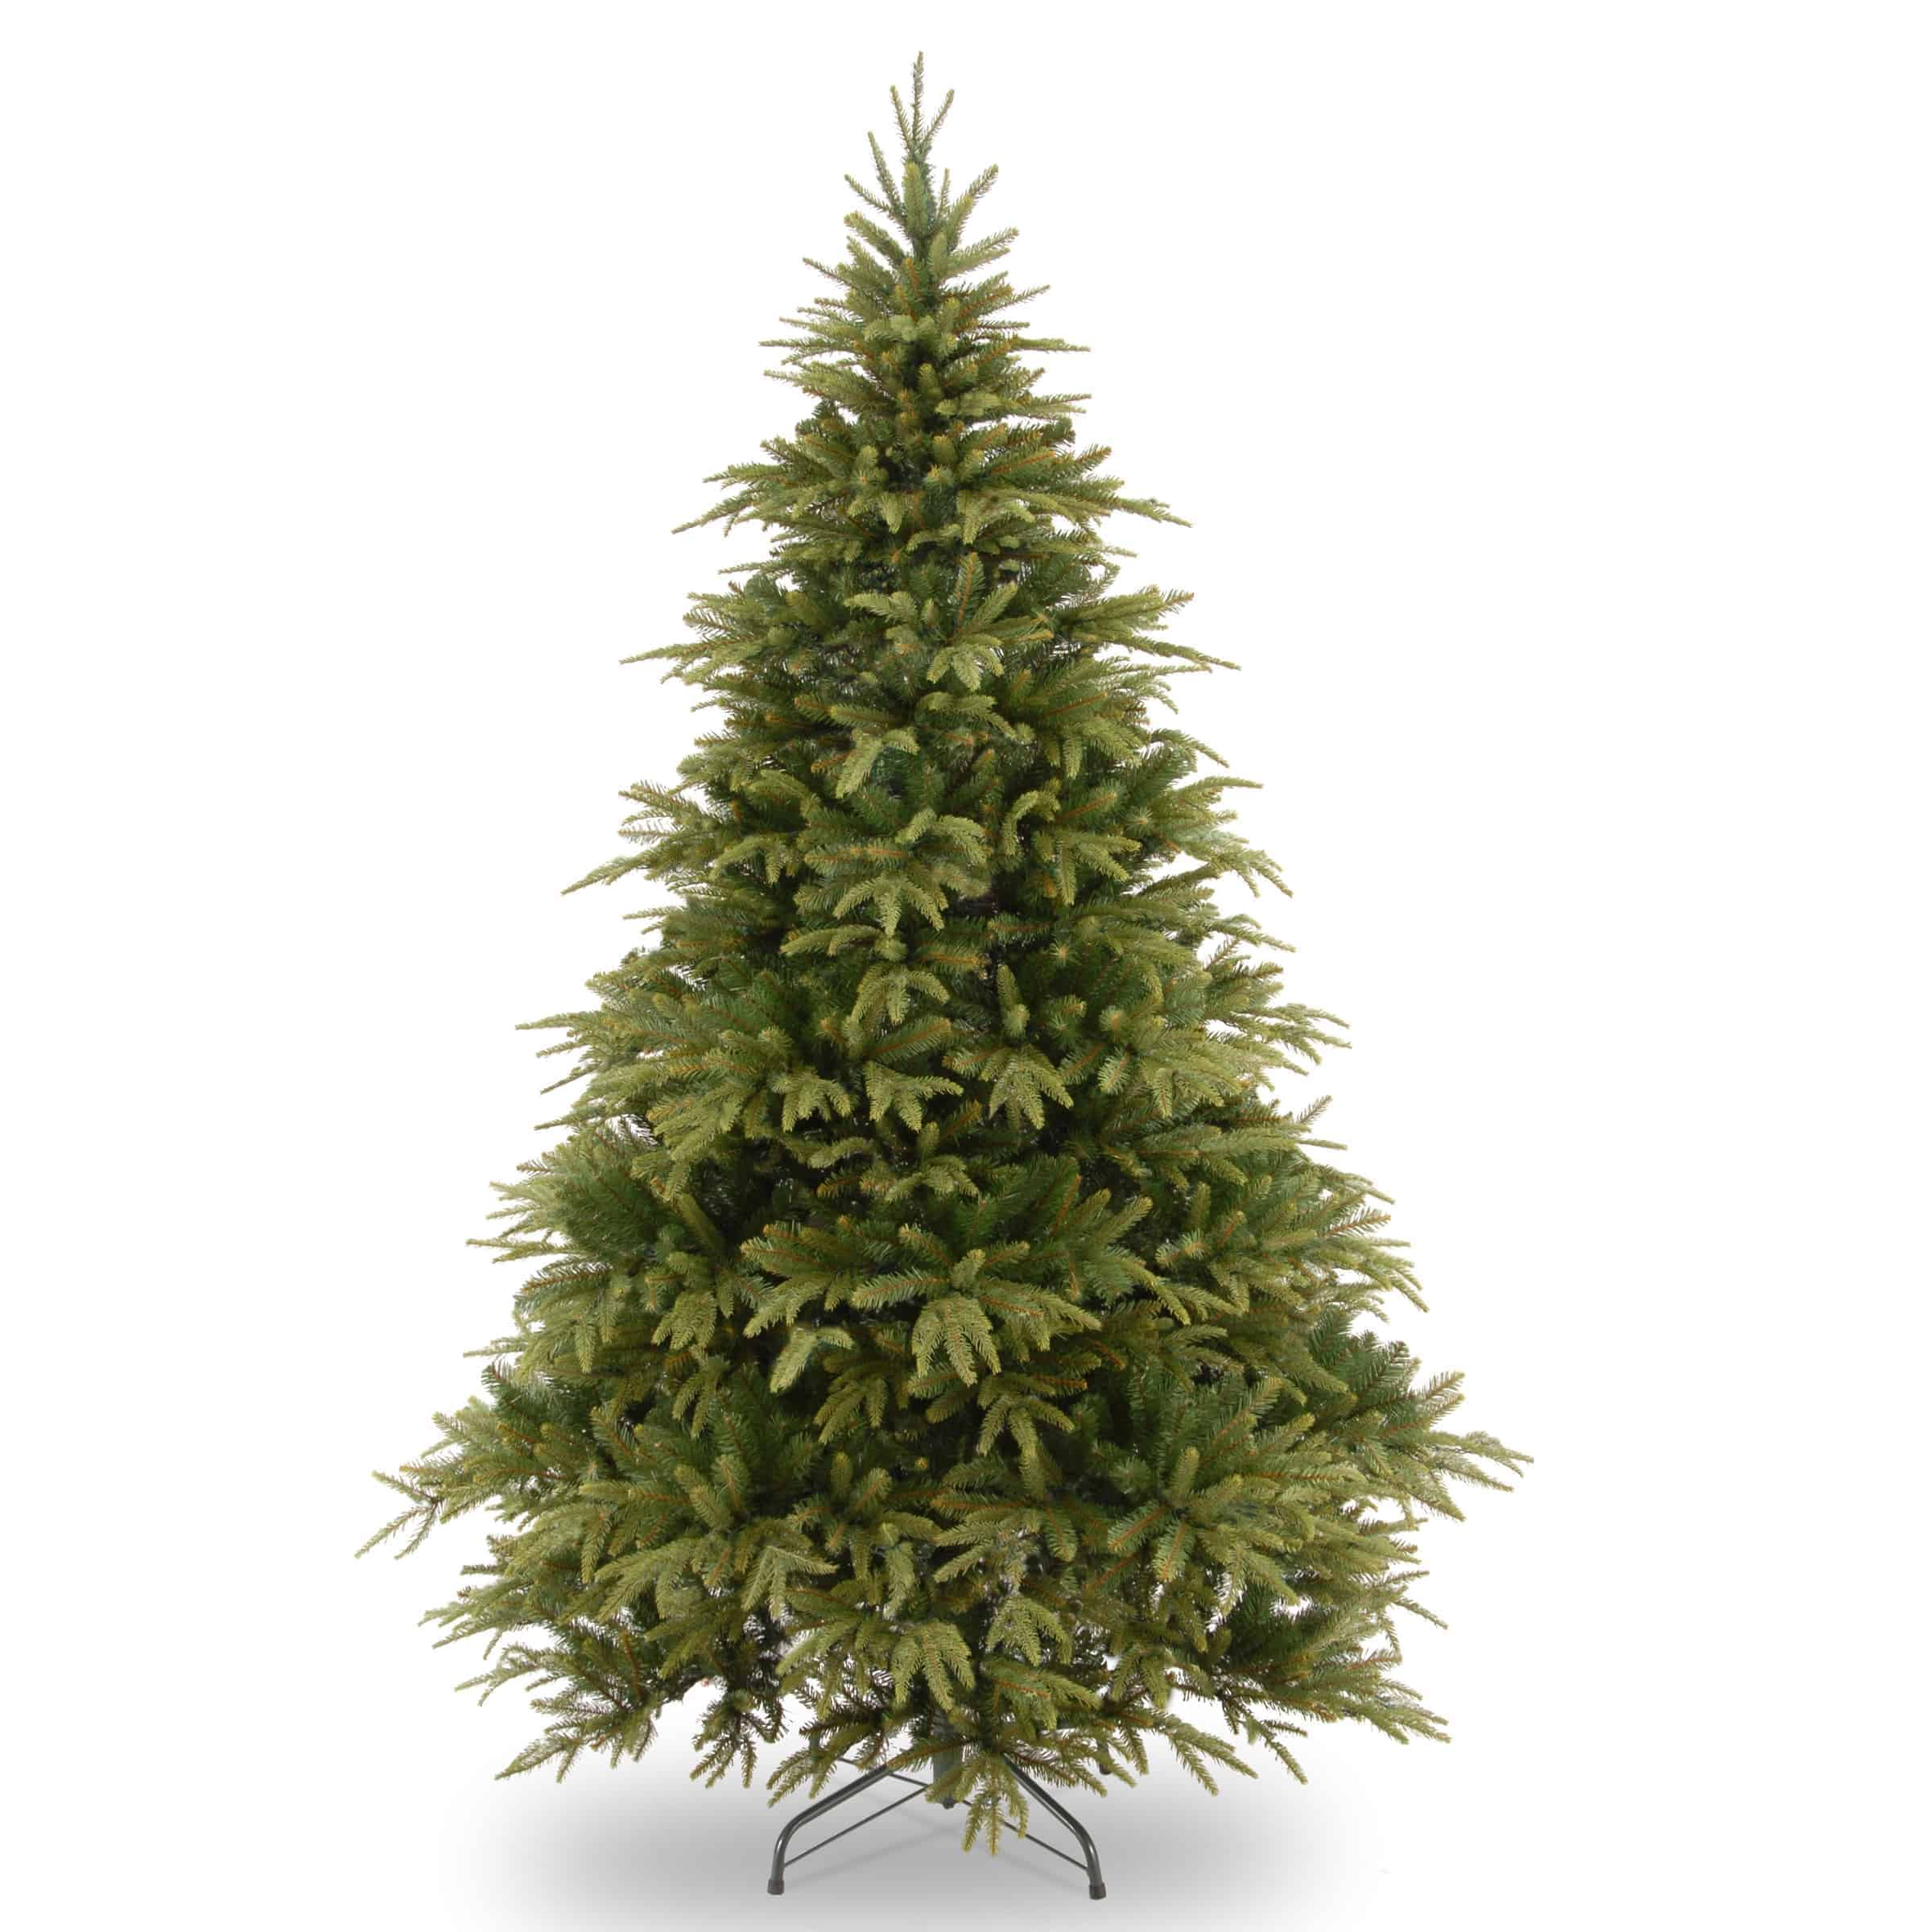 Christmas Tree Clearance.7 5 Ft Warrington Spruce Artificial Christmas Tree Online Only